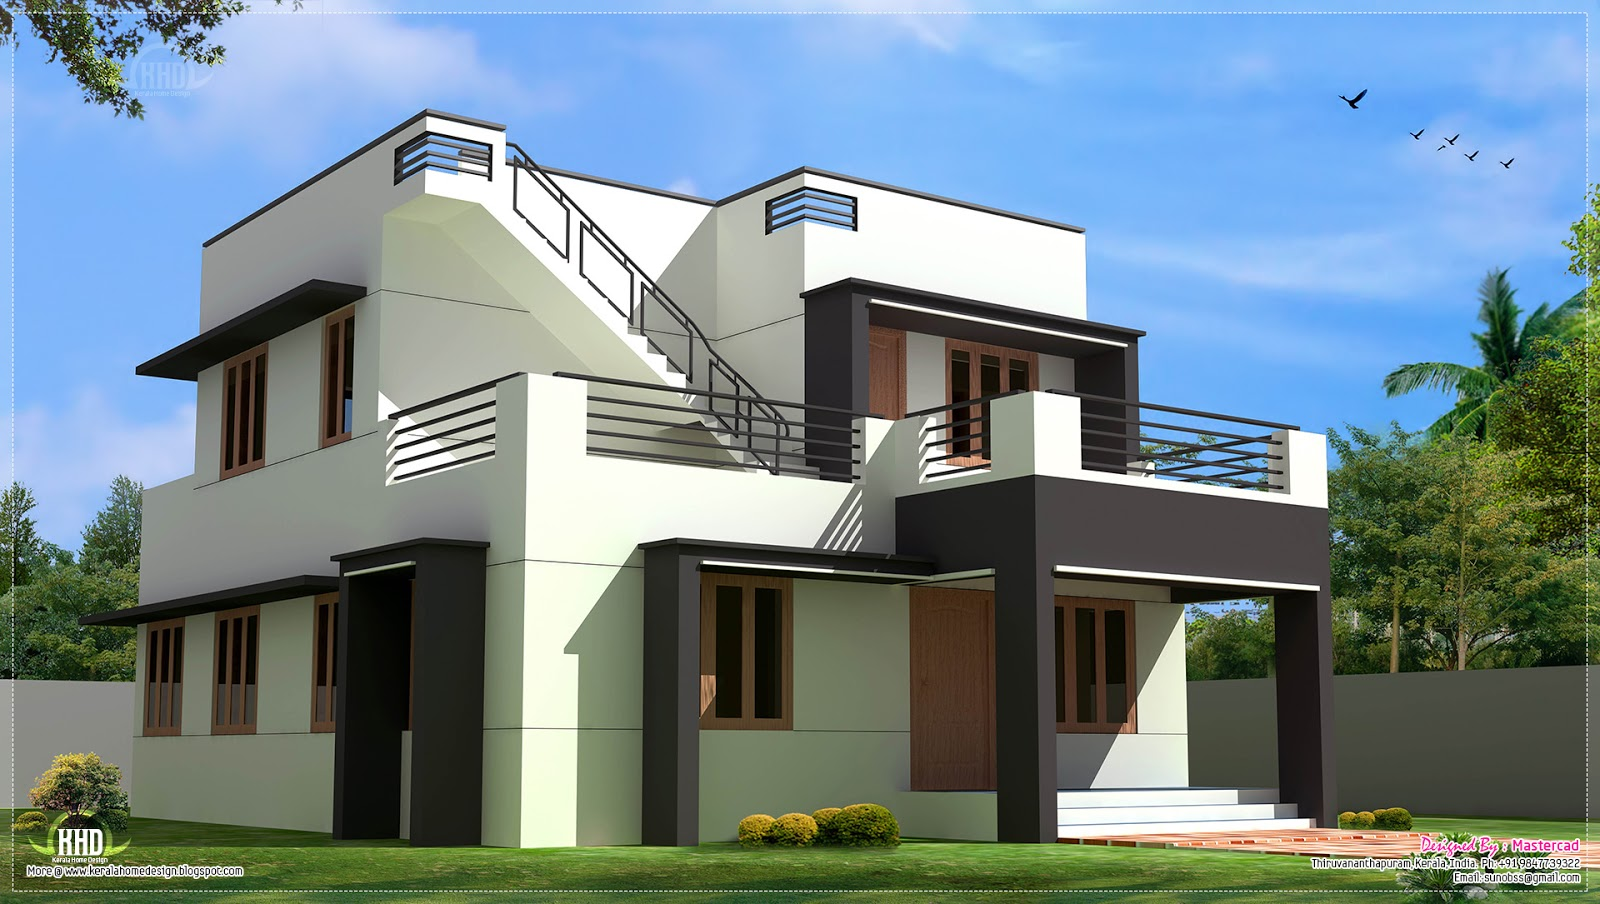 Modern house design in 1700 kerala home design for Modern small home designs india